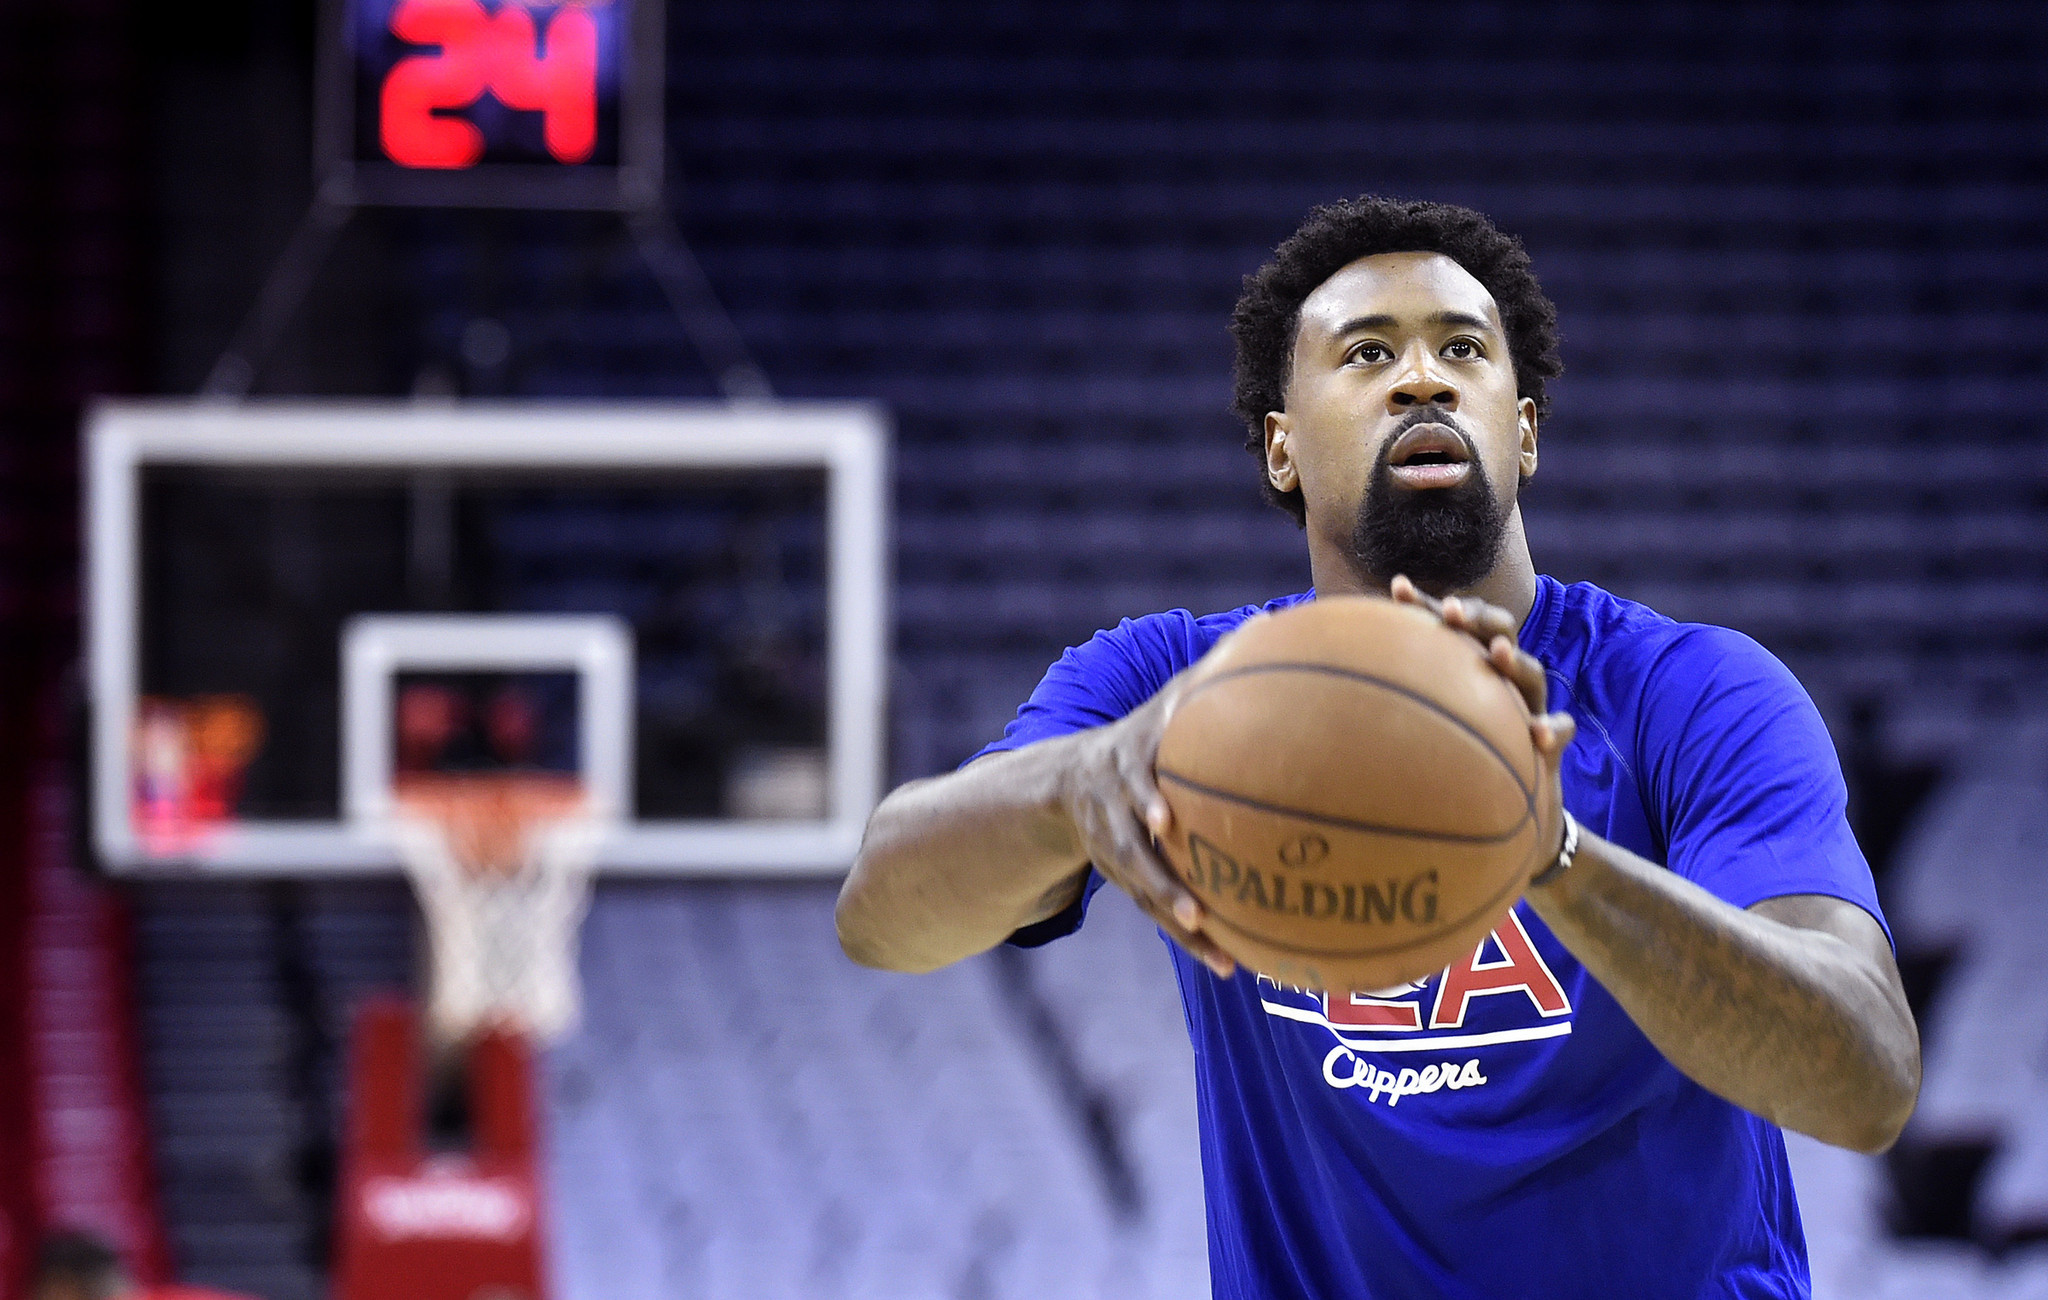 DeAndre Jordan ends madcap day by re-signing with Clippers